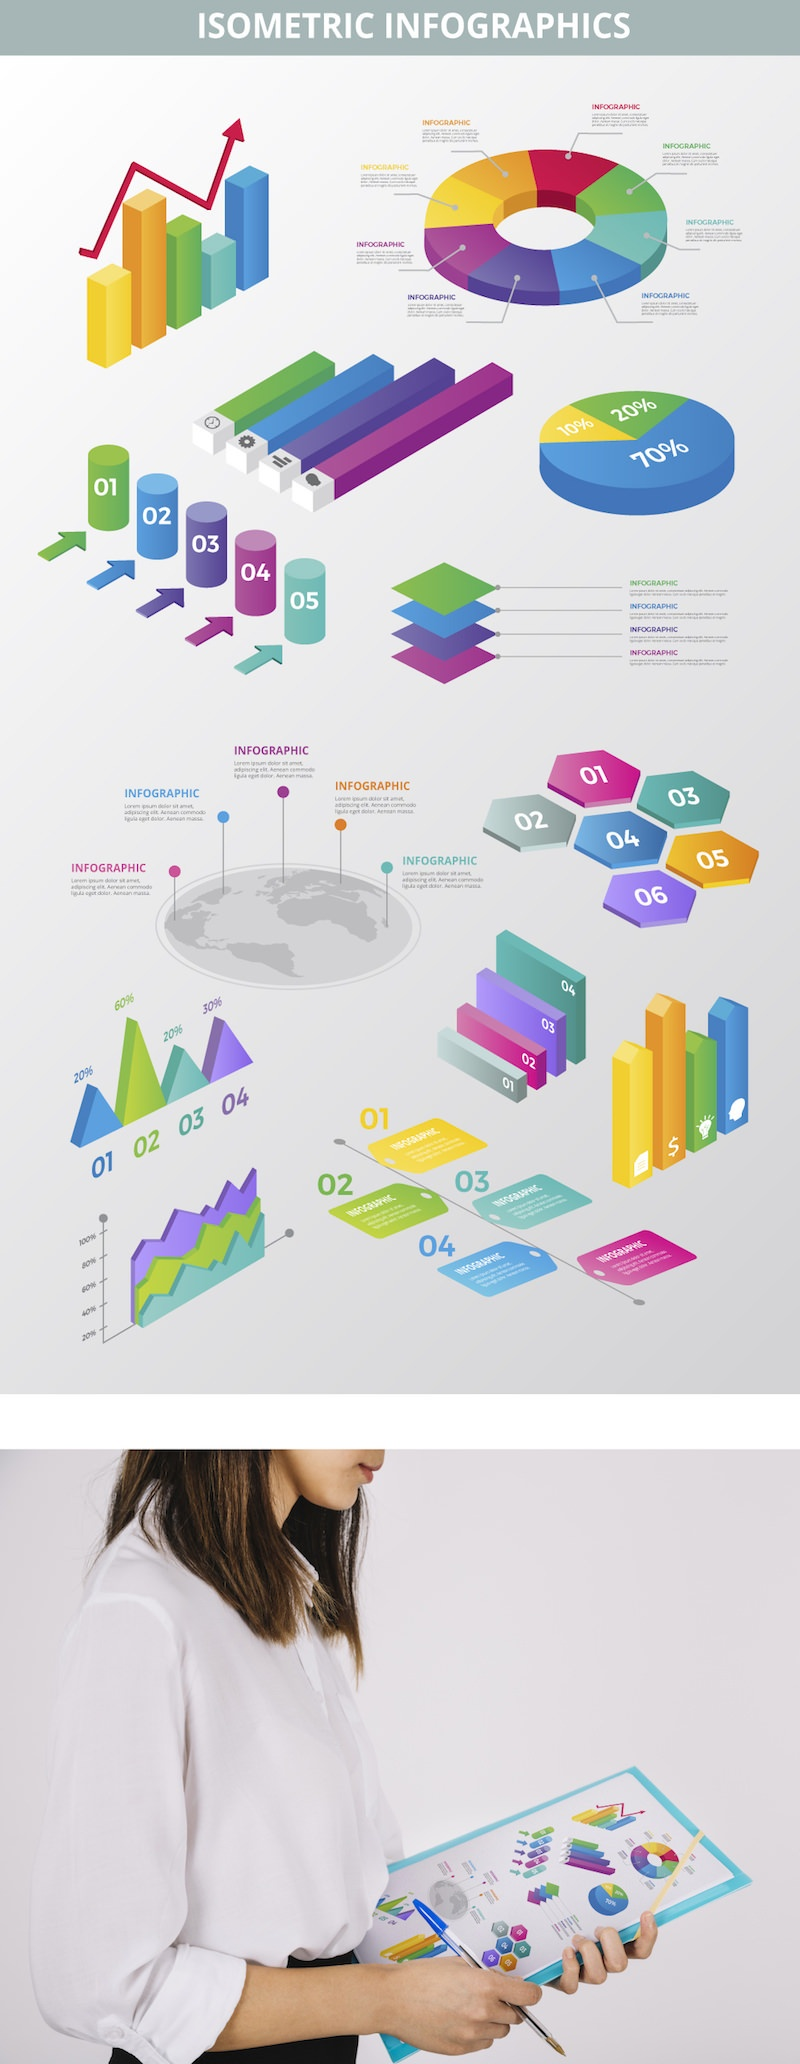 isometric infographic elements